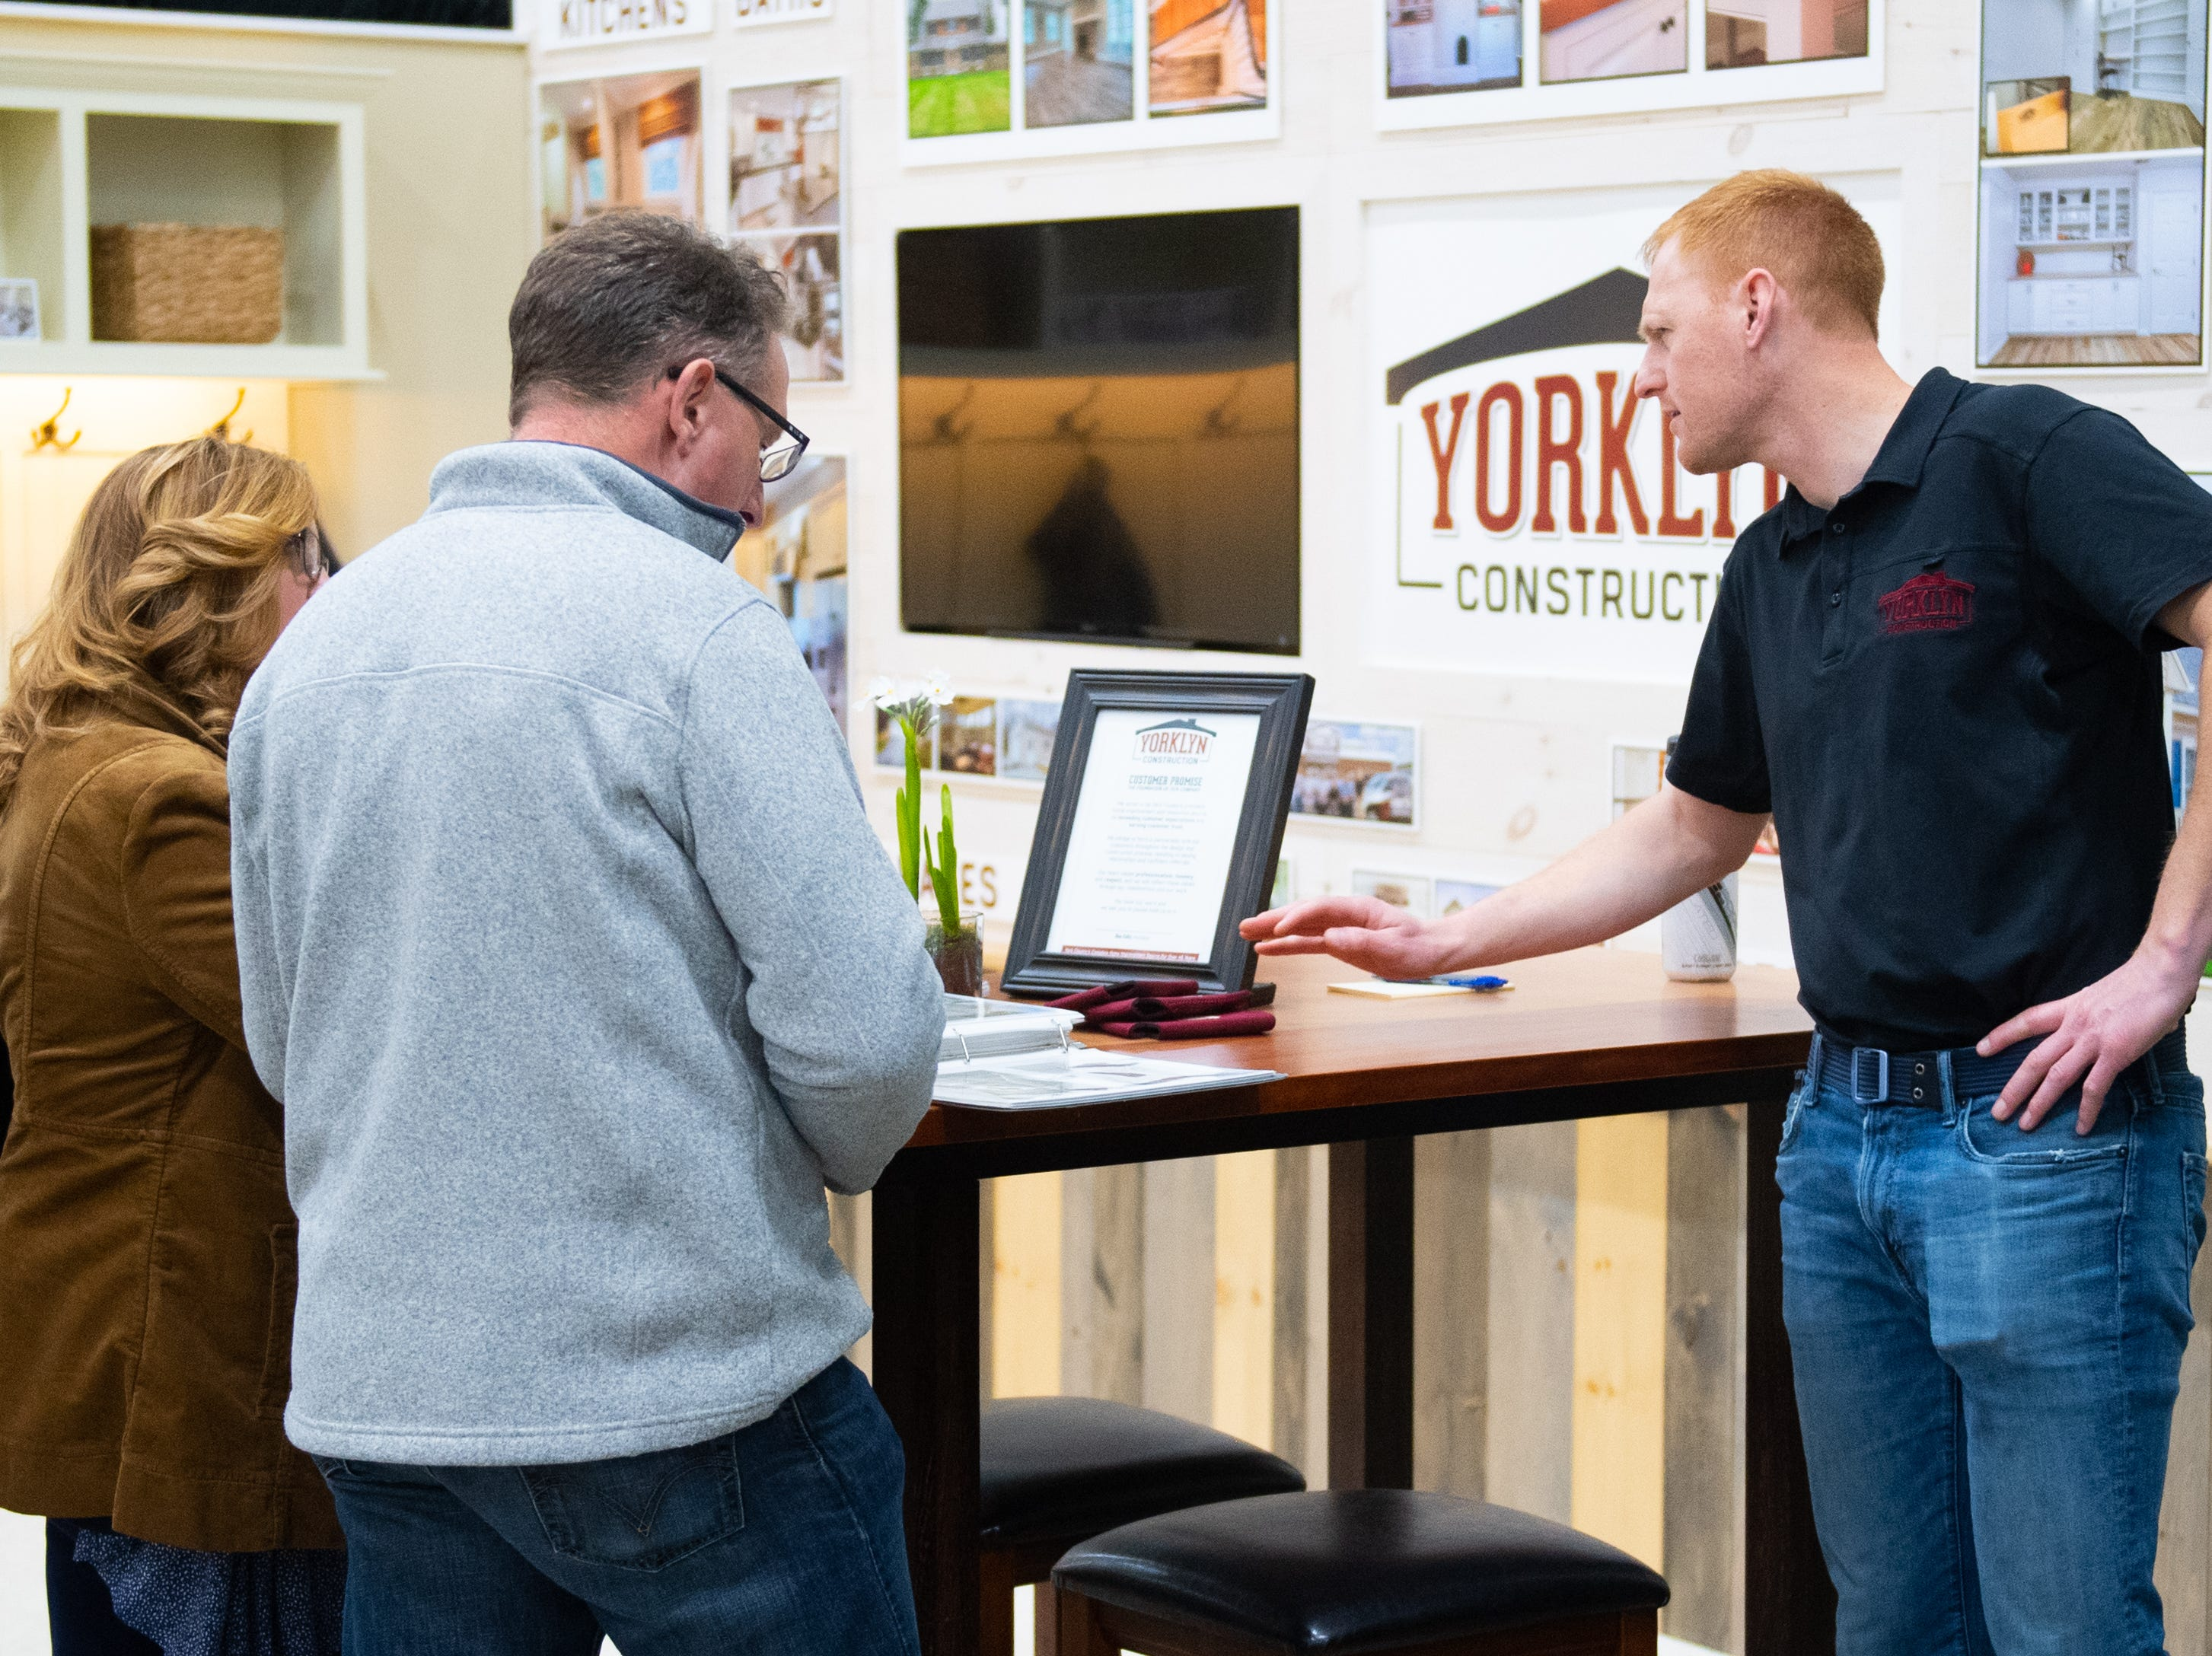 Yorklyn Construction has a booth at the 2019 Home & Garden Show, February 8, 2019.